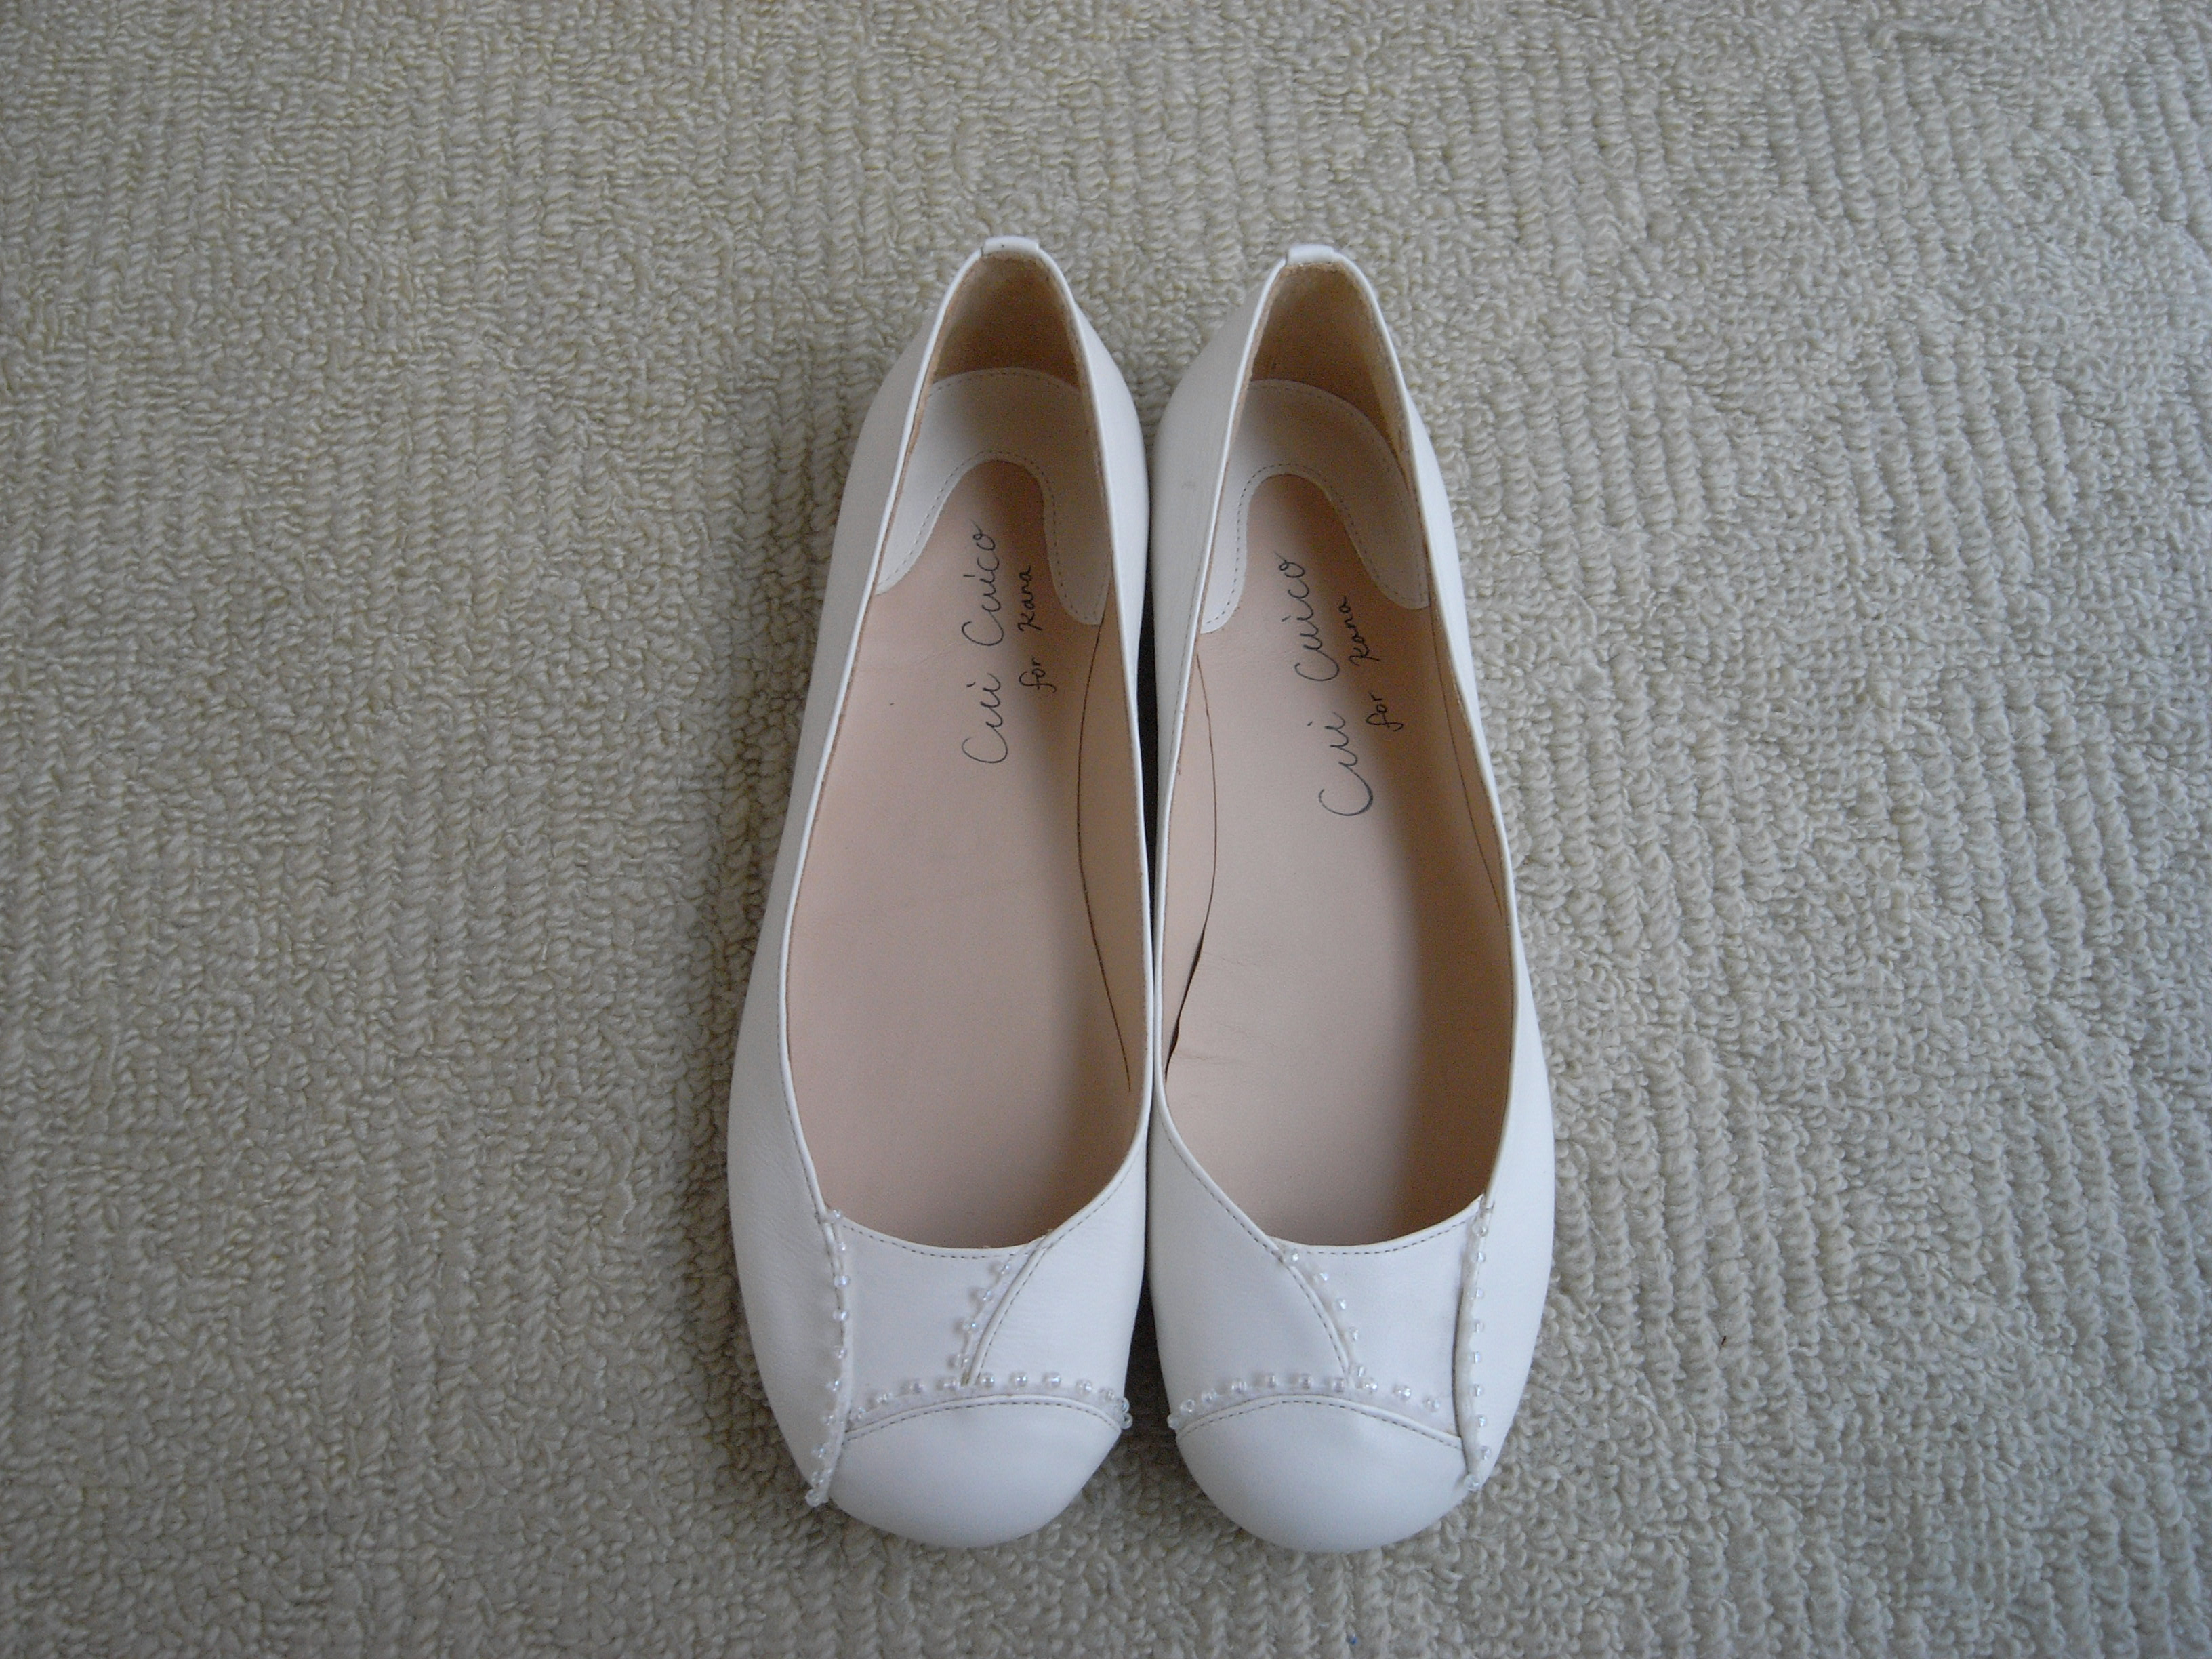 wedding ballet shoes